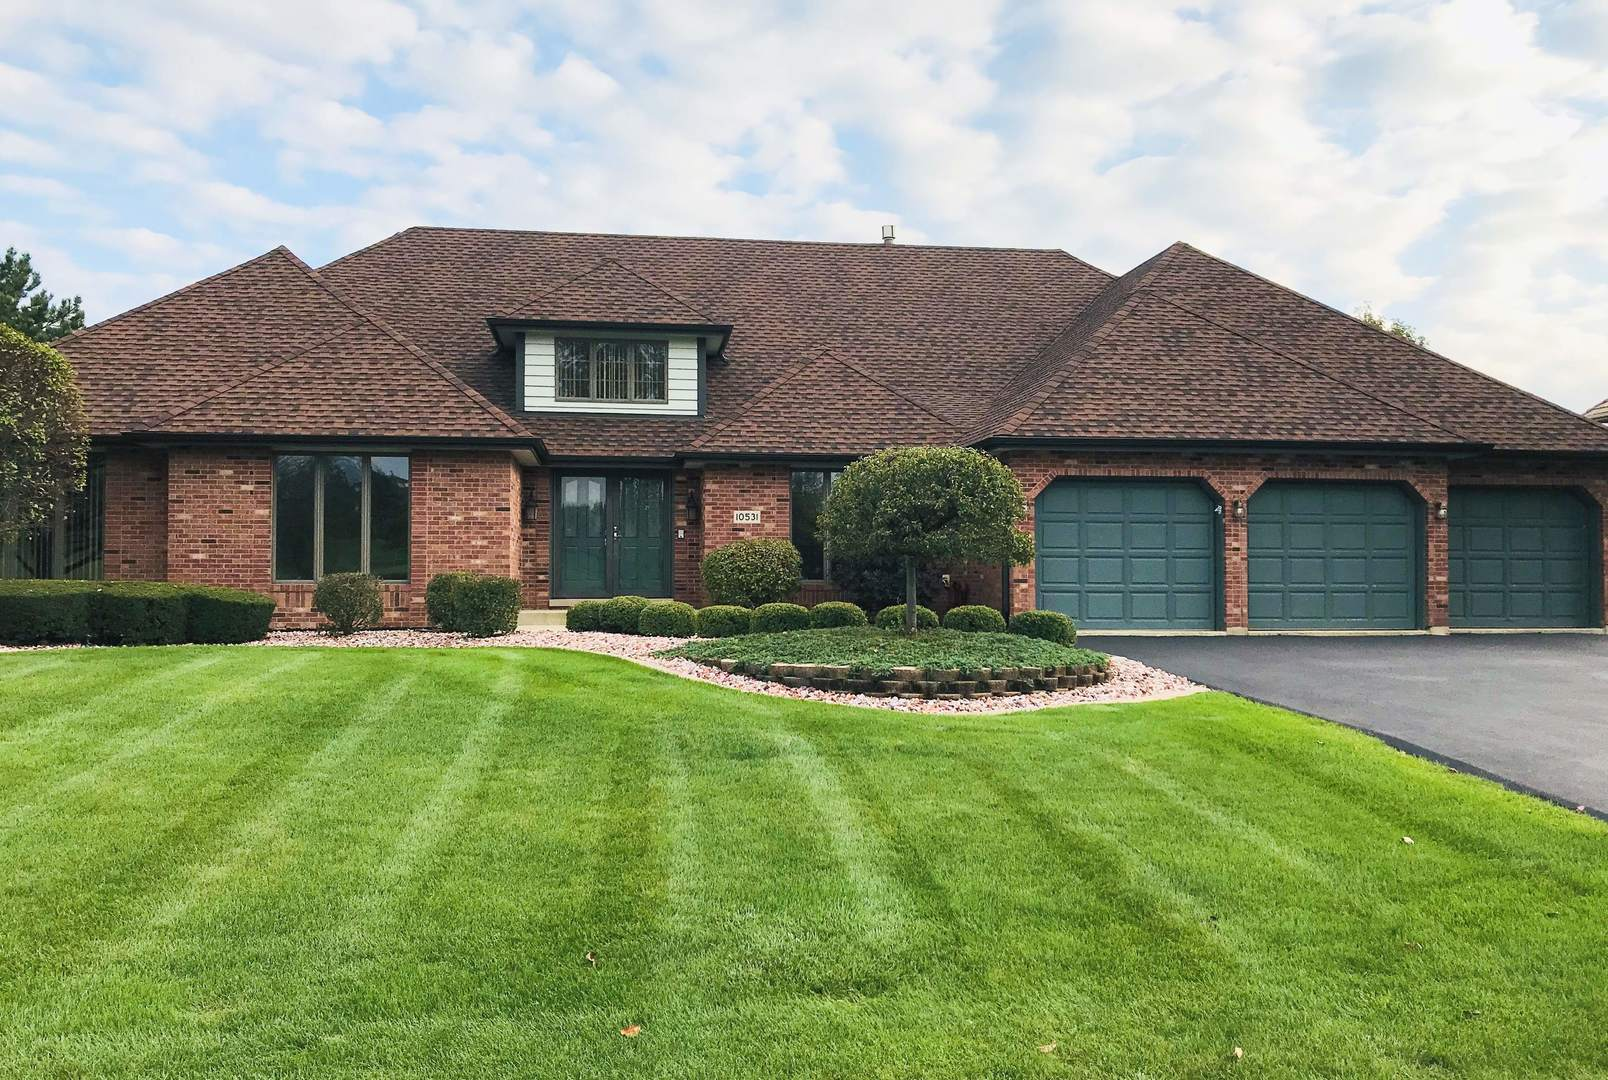 10531 Misty Hill Road, Orland Park, Illinois